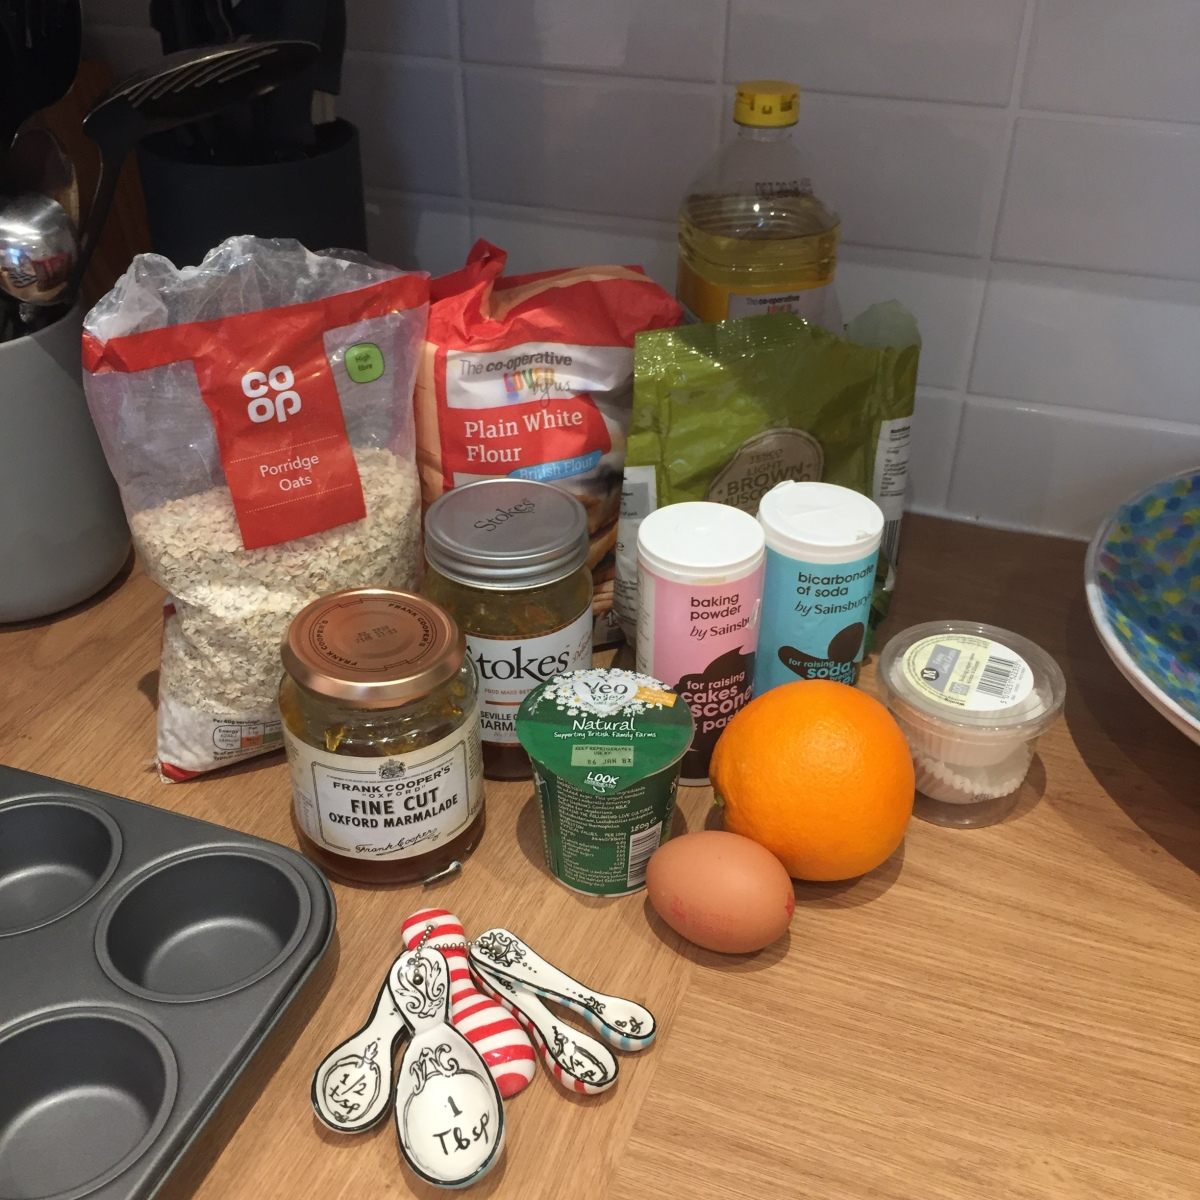 Marmalade muffins ingredients